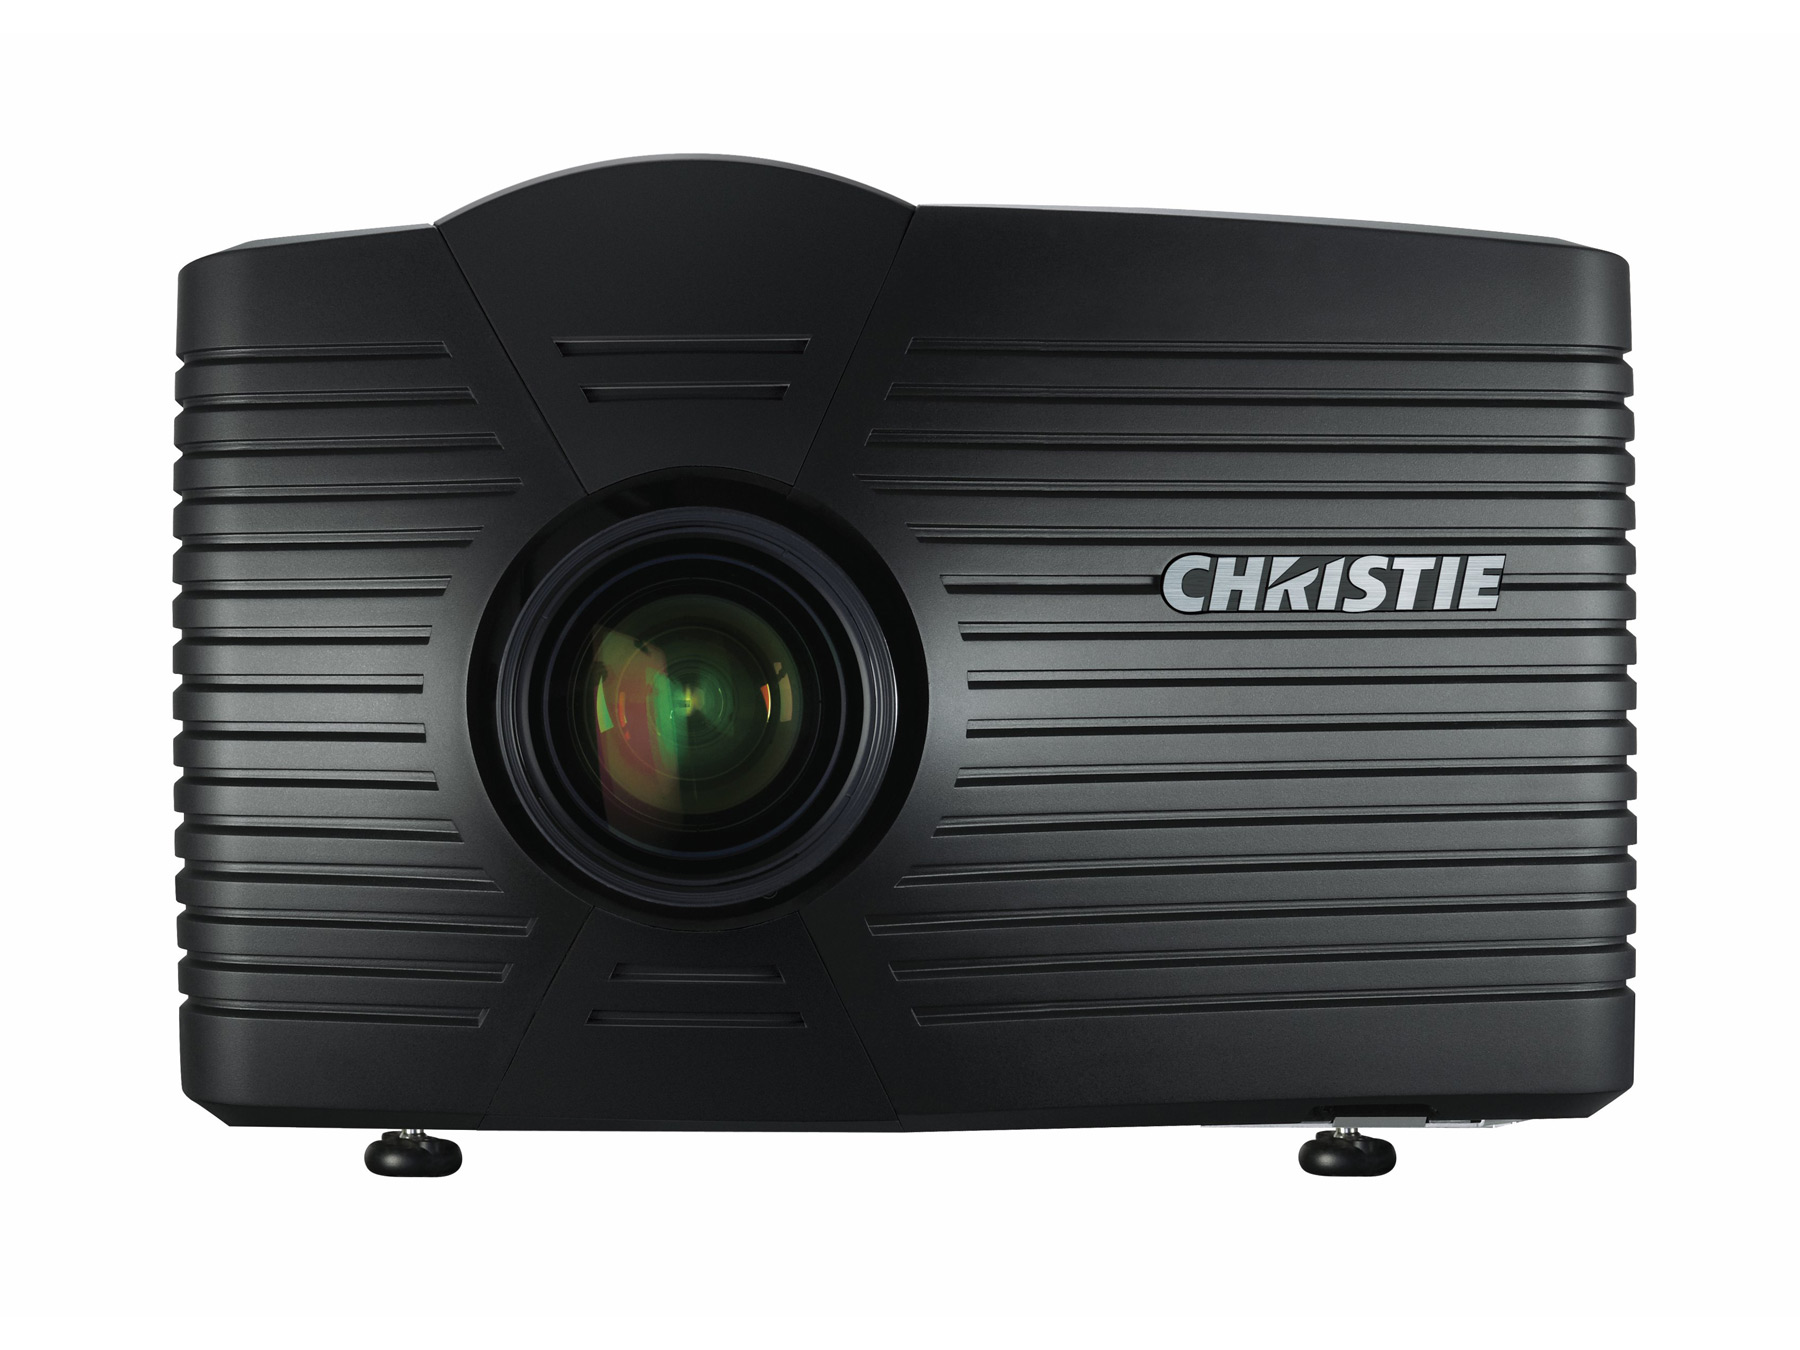 Christie D4K3560 high frame rate 3DLP 4K projector | 129-005106-XX